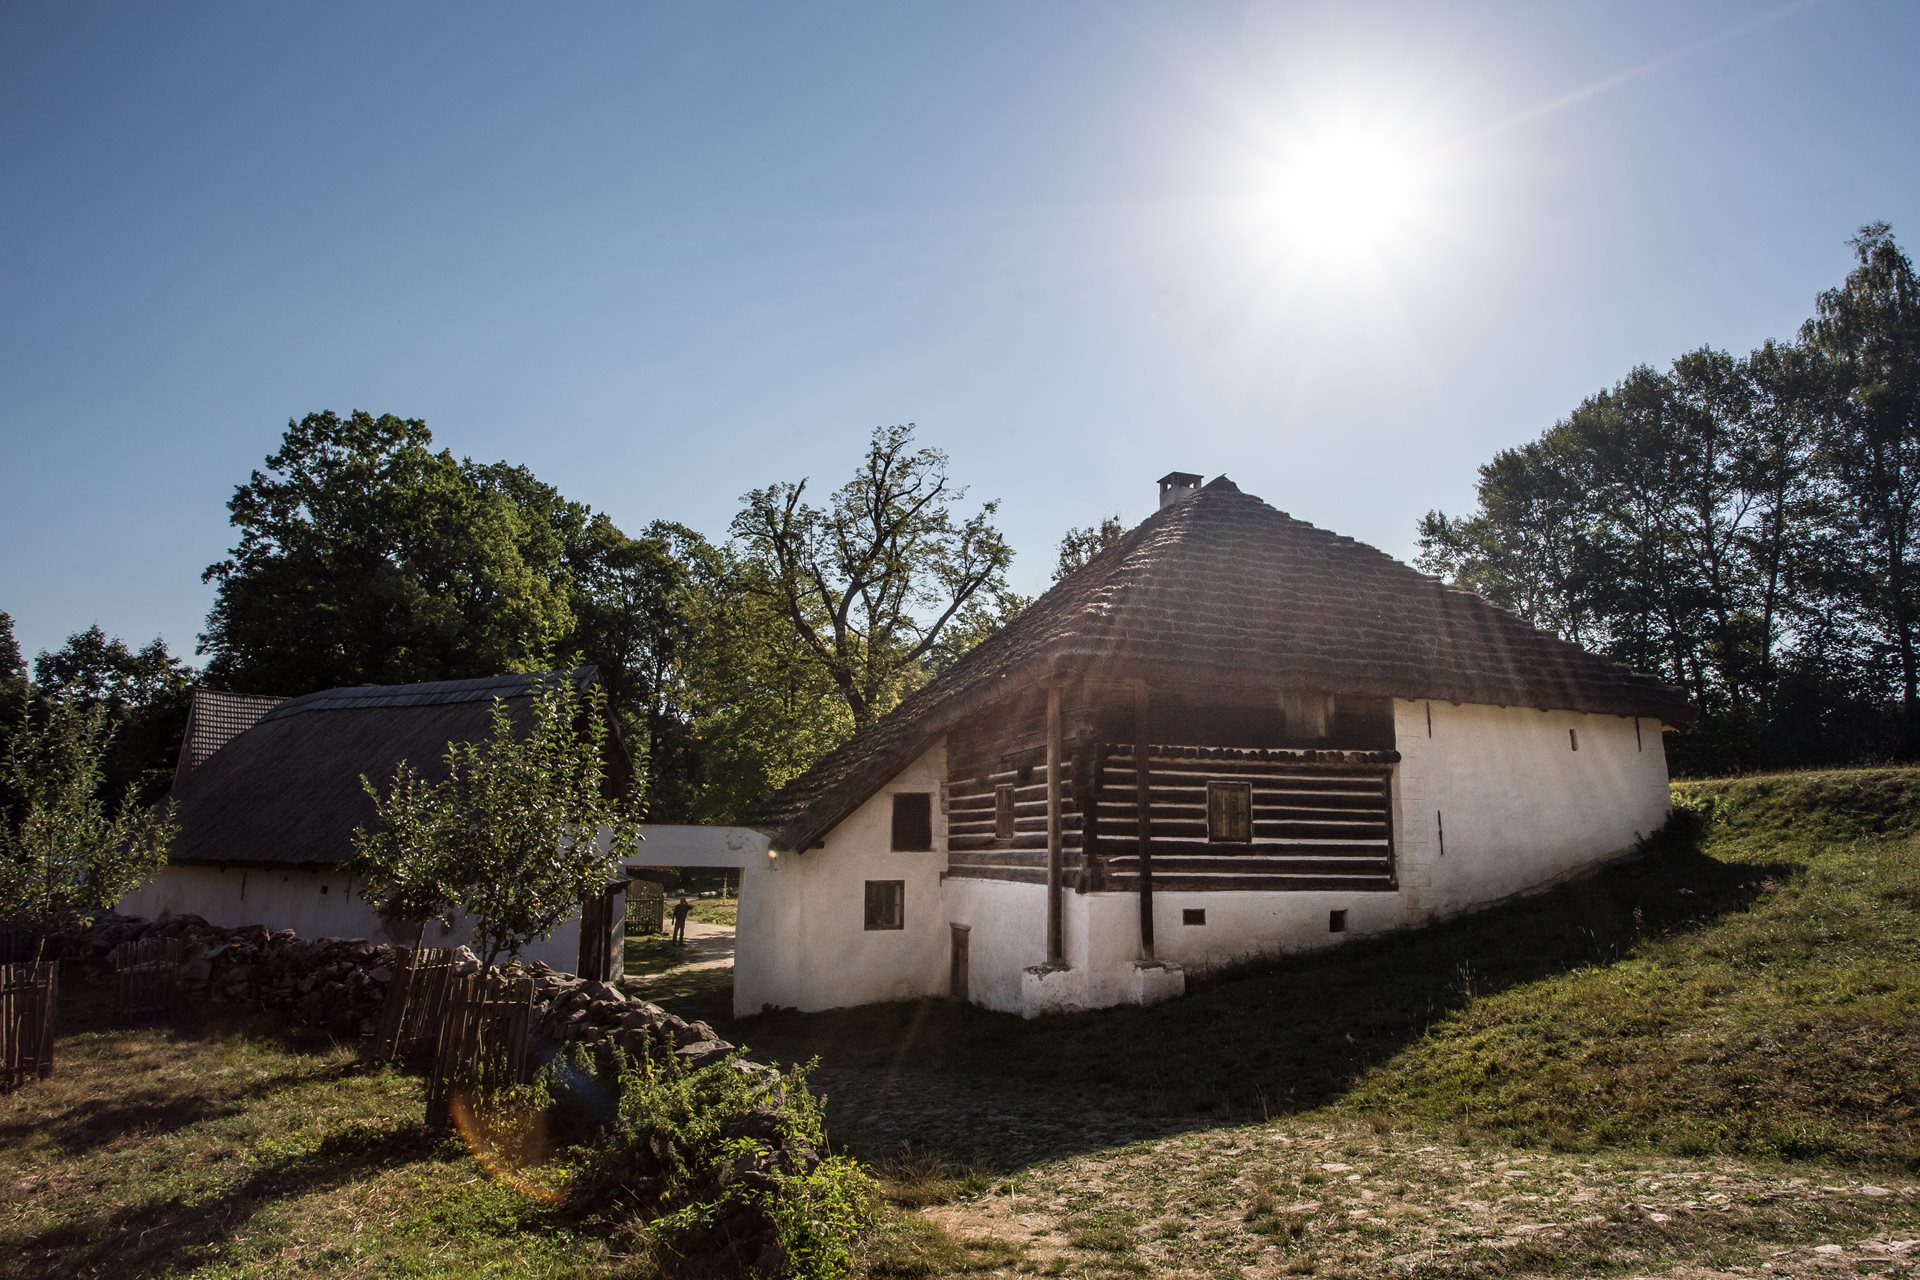 Hoslovice Watermill